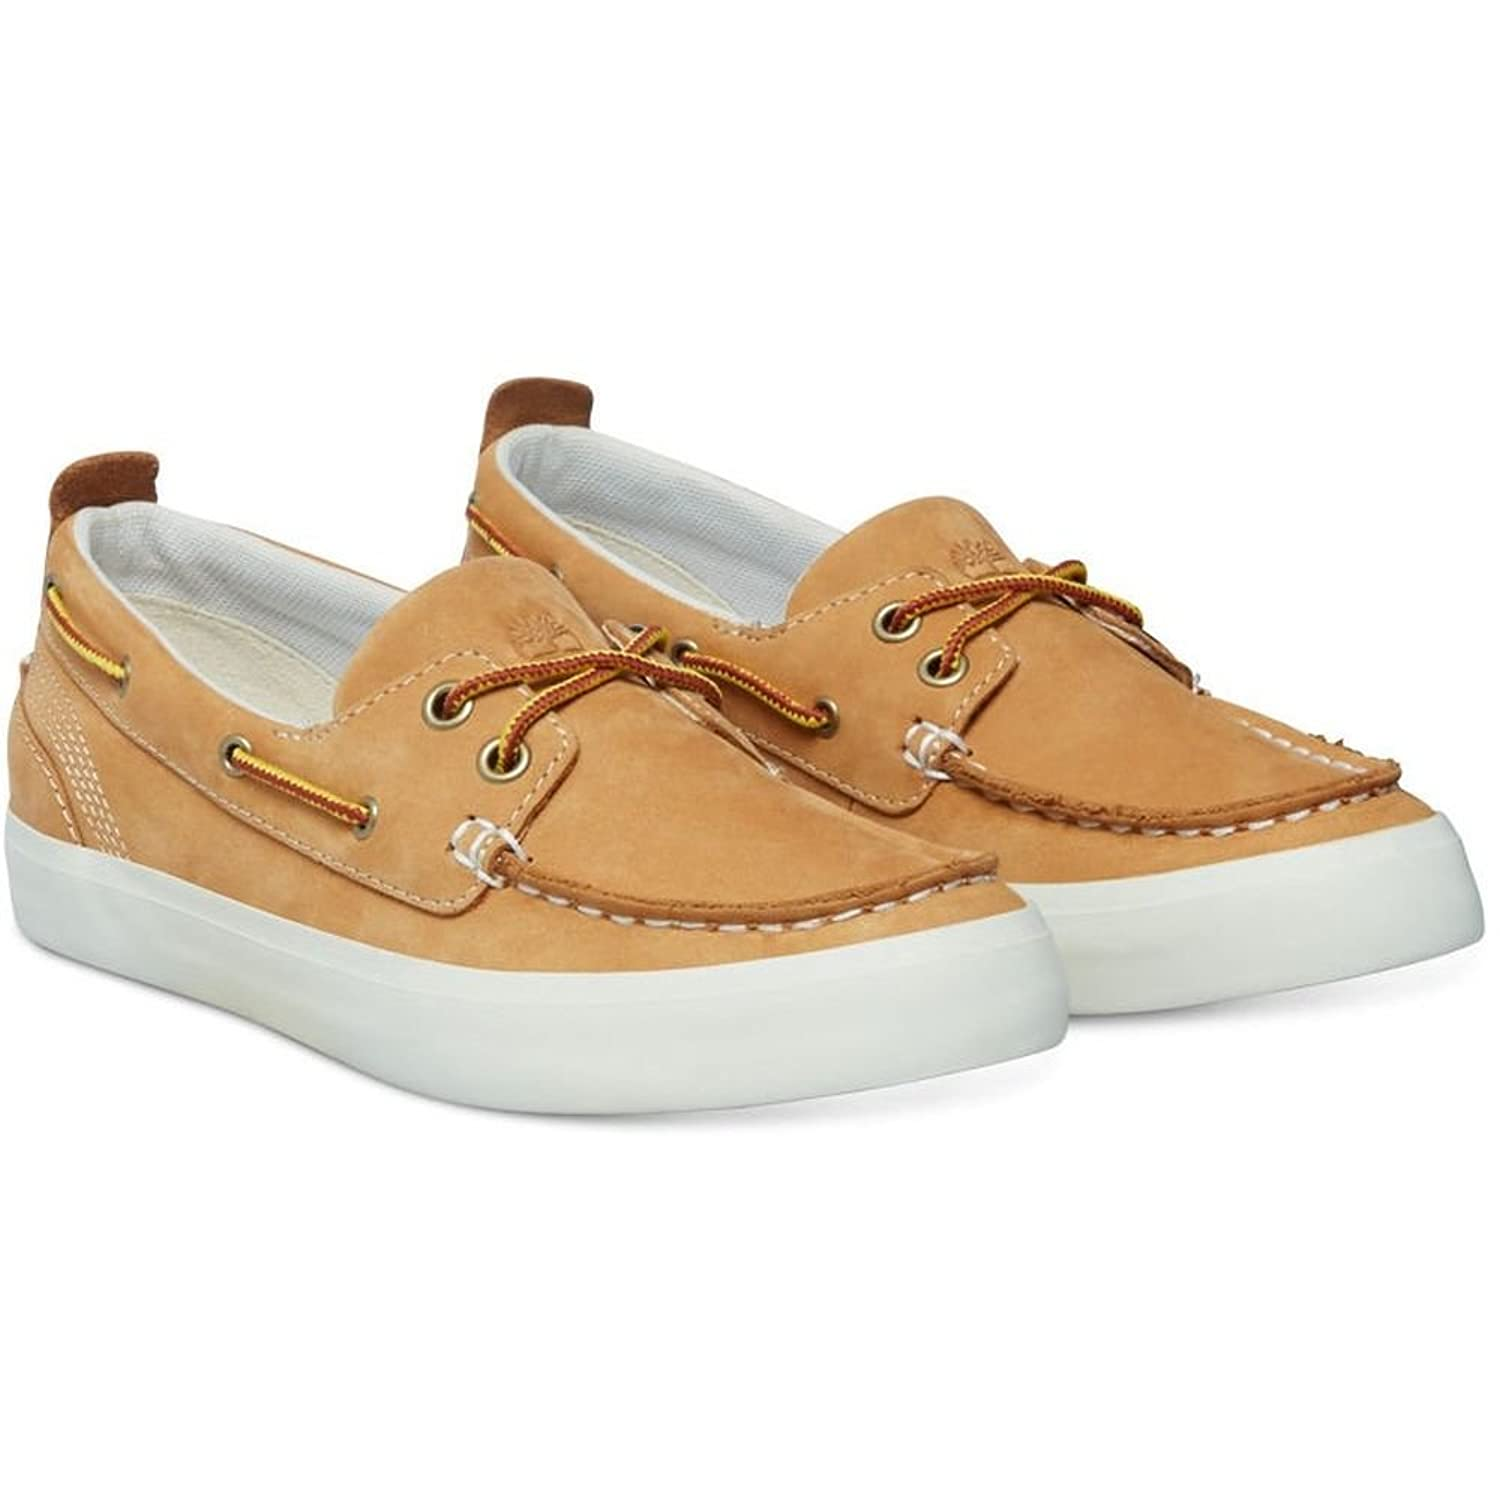 Timberland CA15T5 Women's Brattleboro Boat Shoe, Color: Beige, Size: 6.5(W)  US: Amazon.ca: Shoes & Handbags